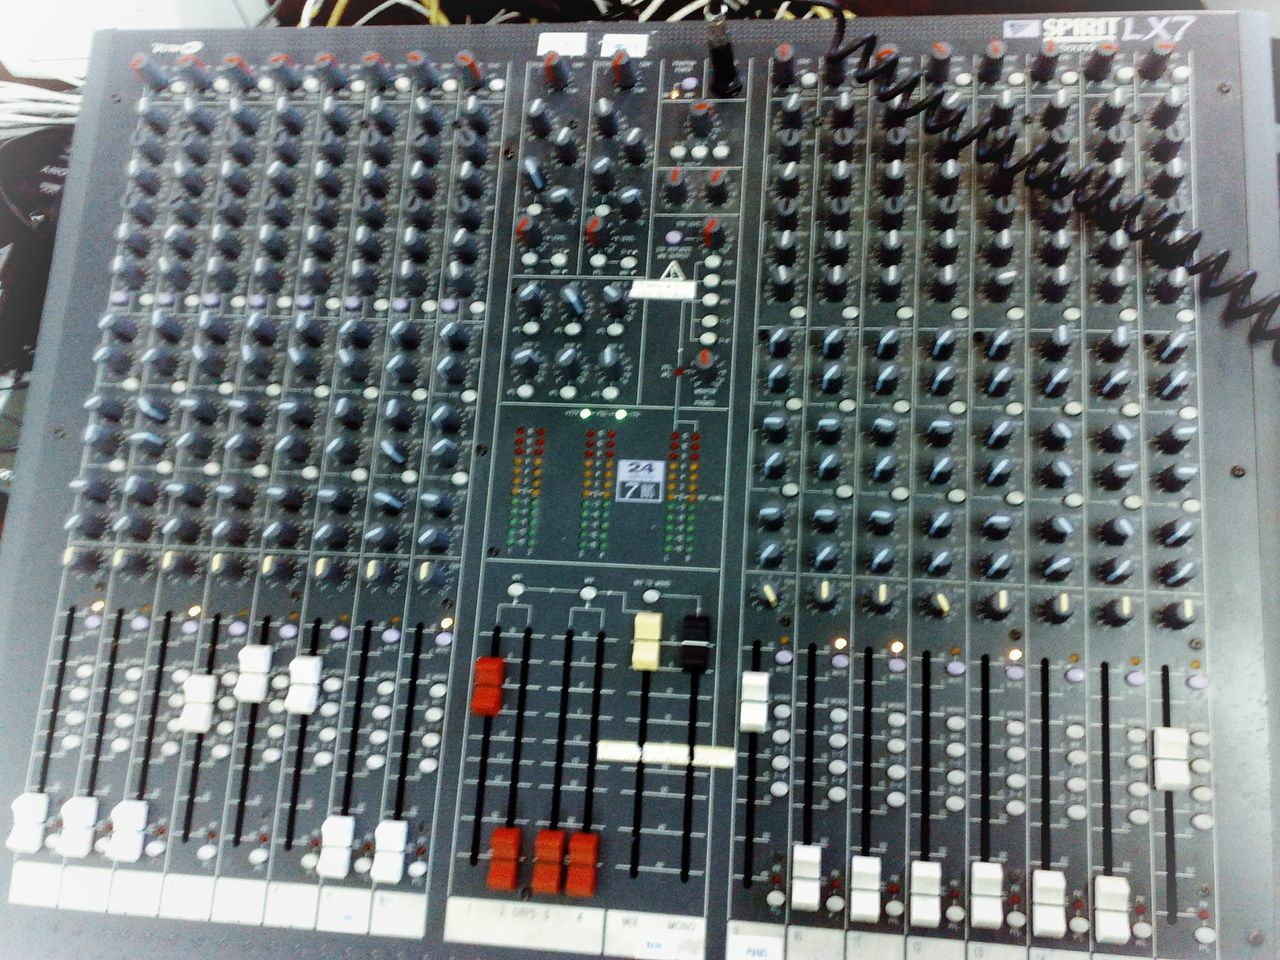 No People Day Indoors  Backgrounds Close-up Mixer Desk Mixers Mixer Control Panel Spirit Lx7 Knobs And Dials Faders GeekPhotography Technology